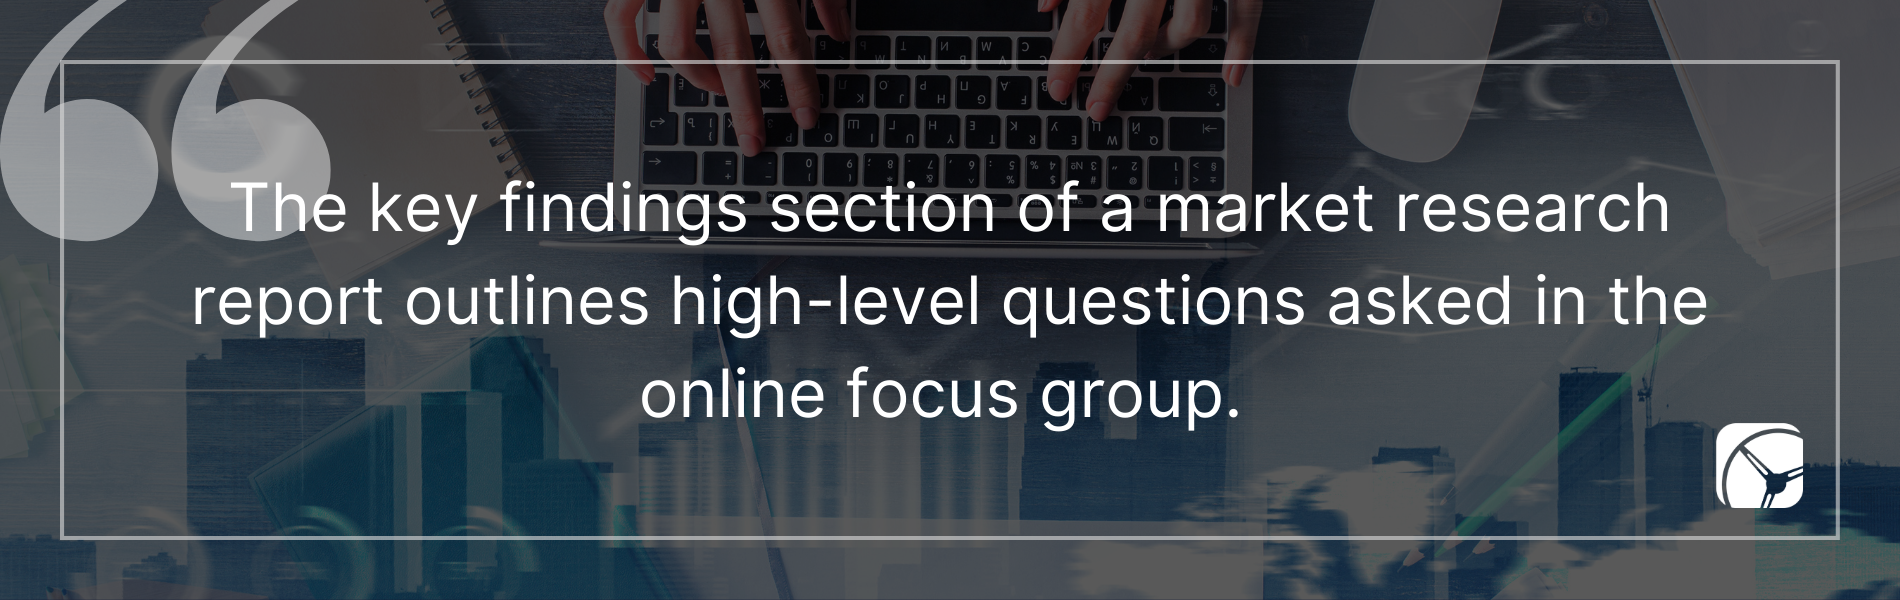 The key findings section of a market research report outlines high-level questions asked in the online focus group.